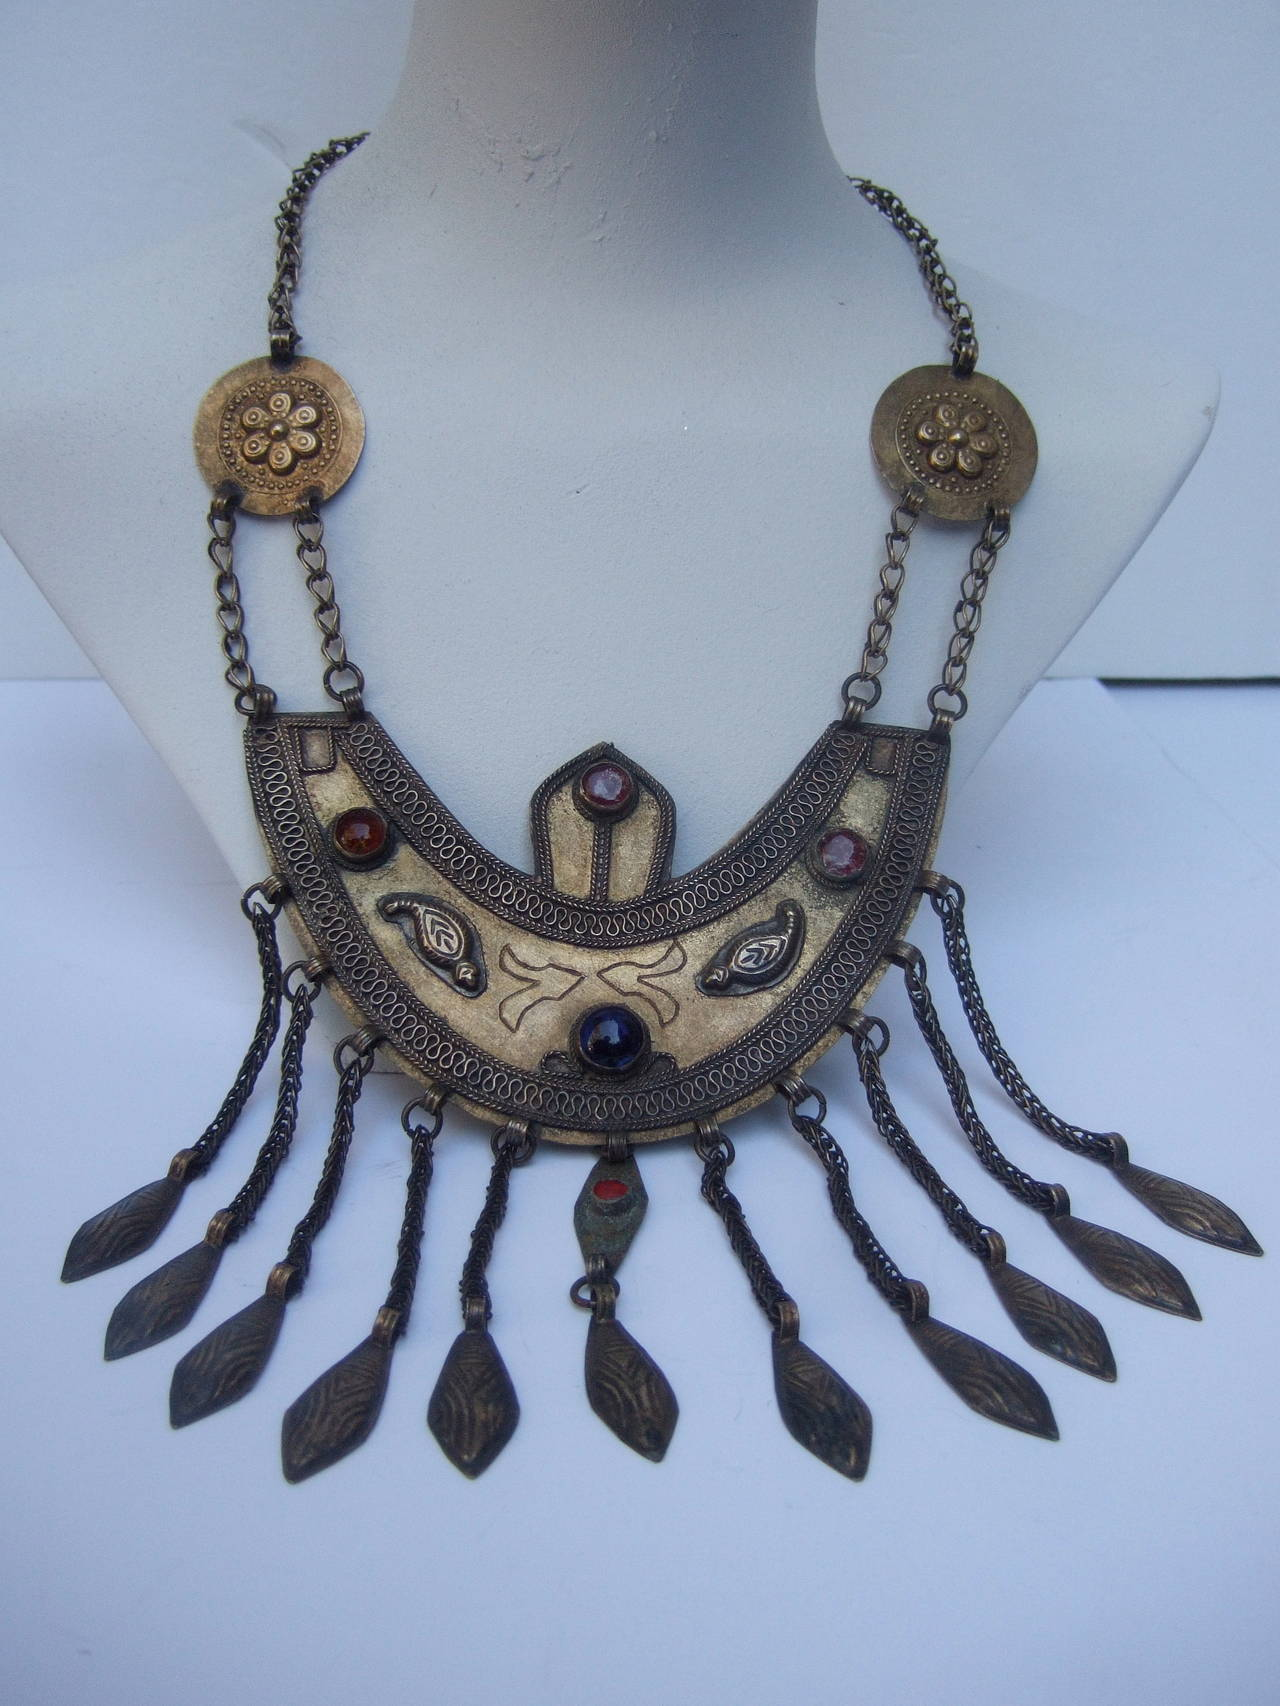 Massive Egyptian Revival Style Jeweled Serpent Ceremonial Necklace For Sale 3